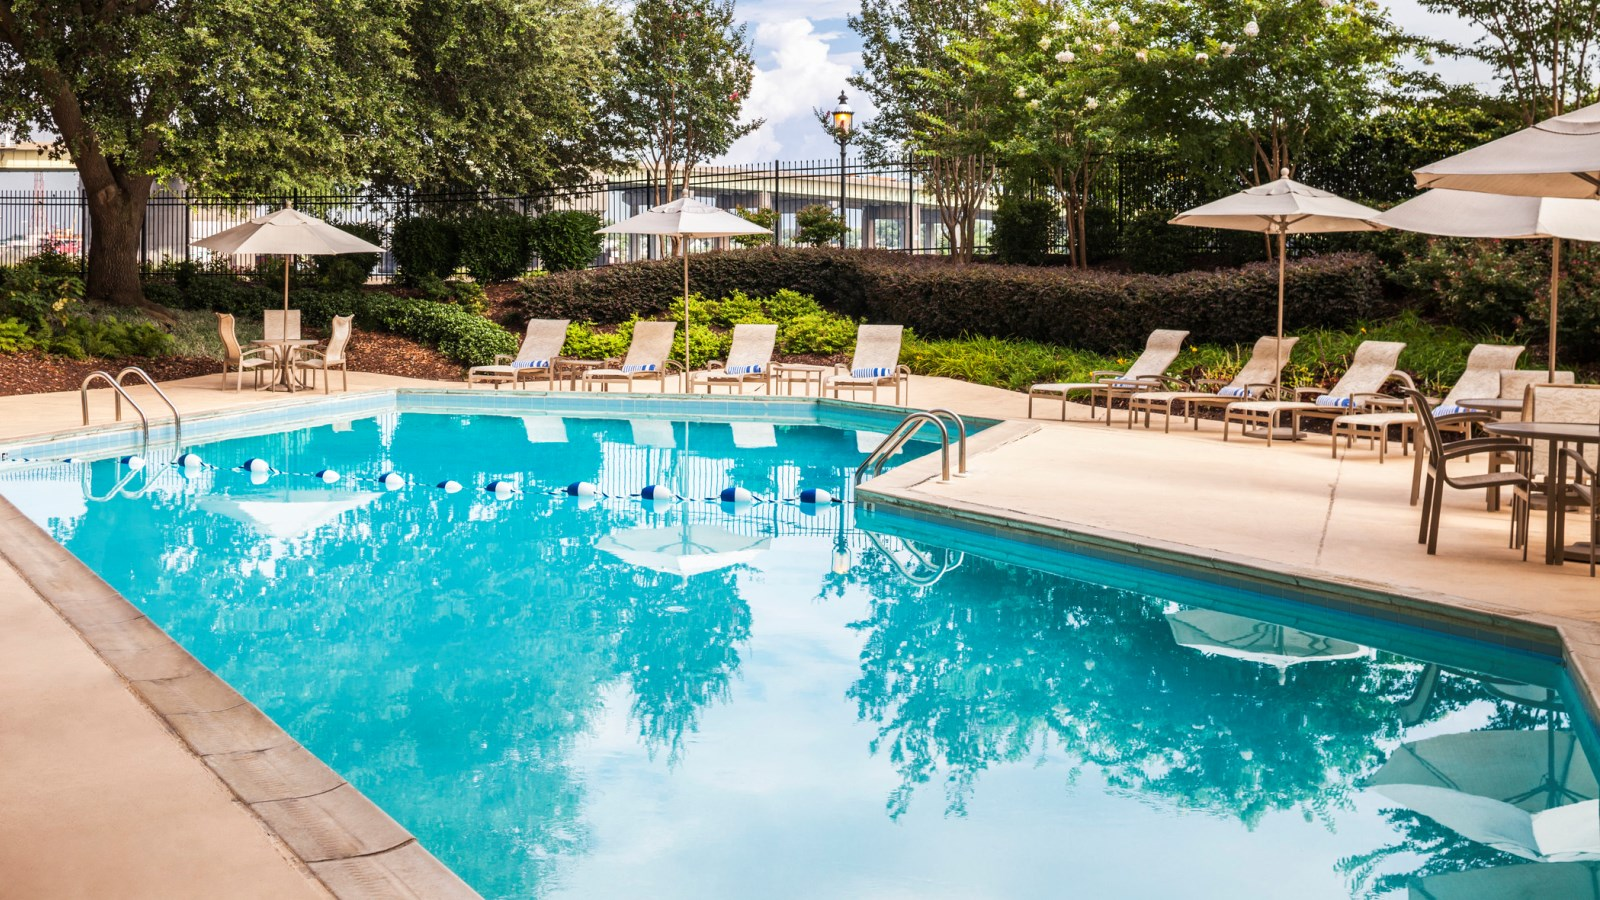 Sheraton Norfolk Waterside Hotel Pool